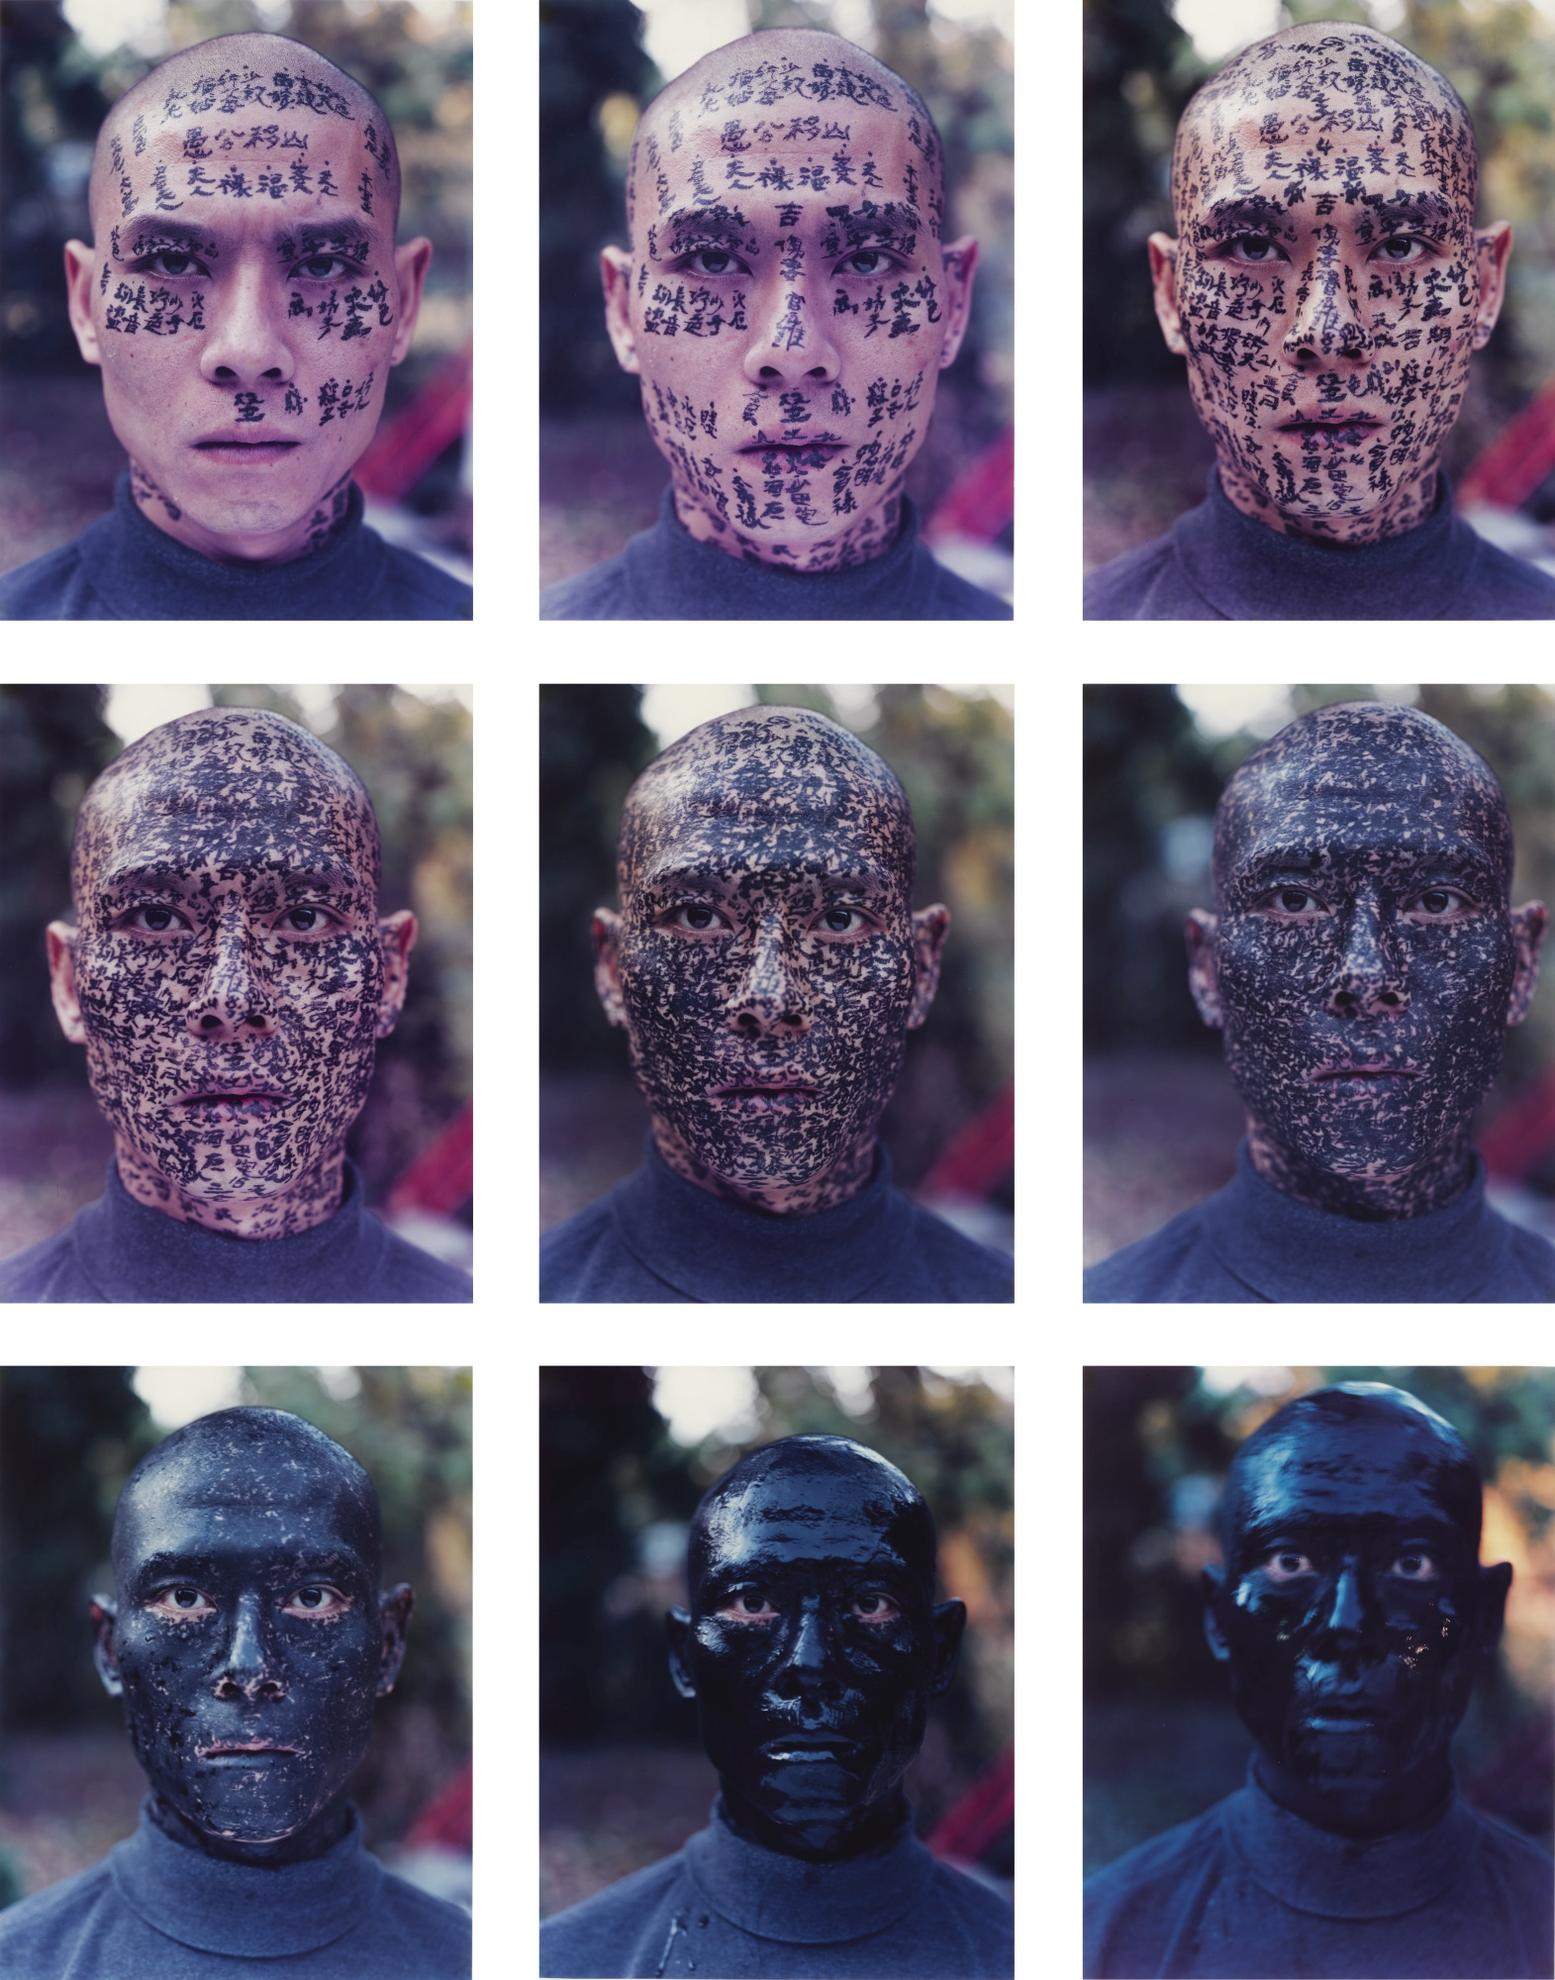 Zhang Huan-Family Tree-2000